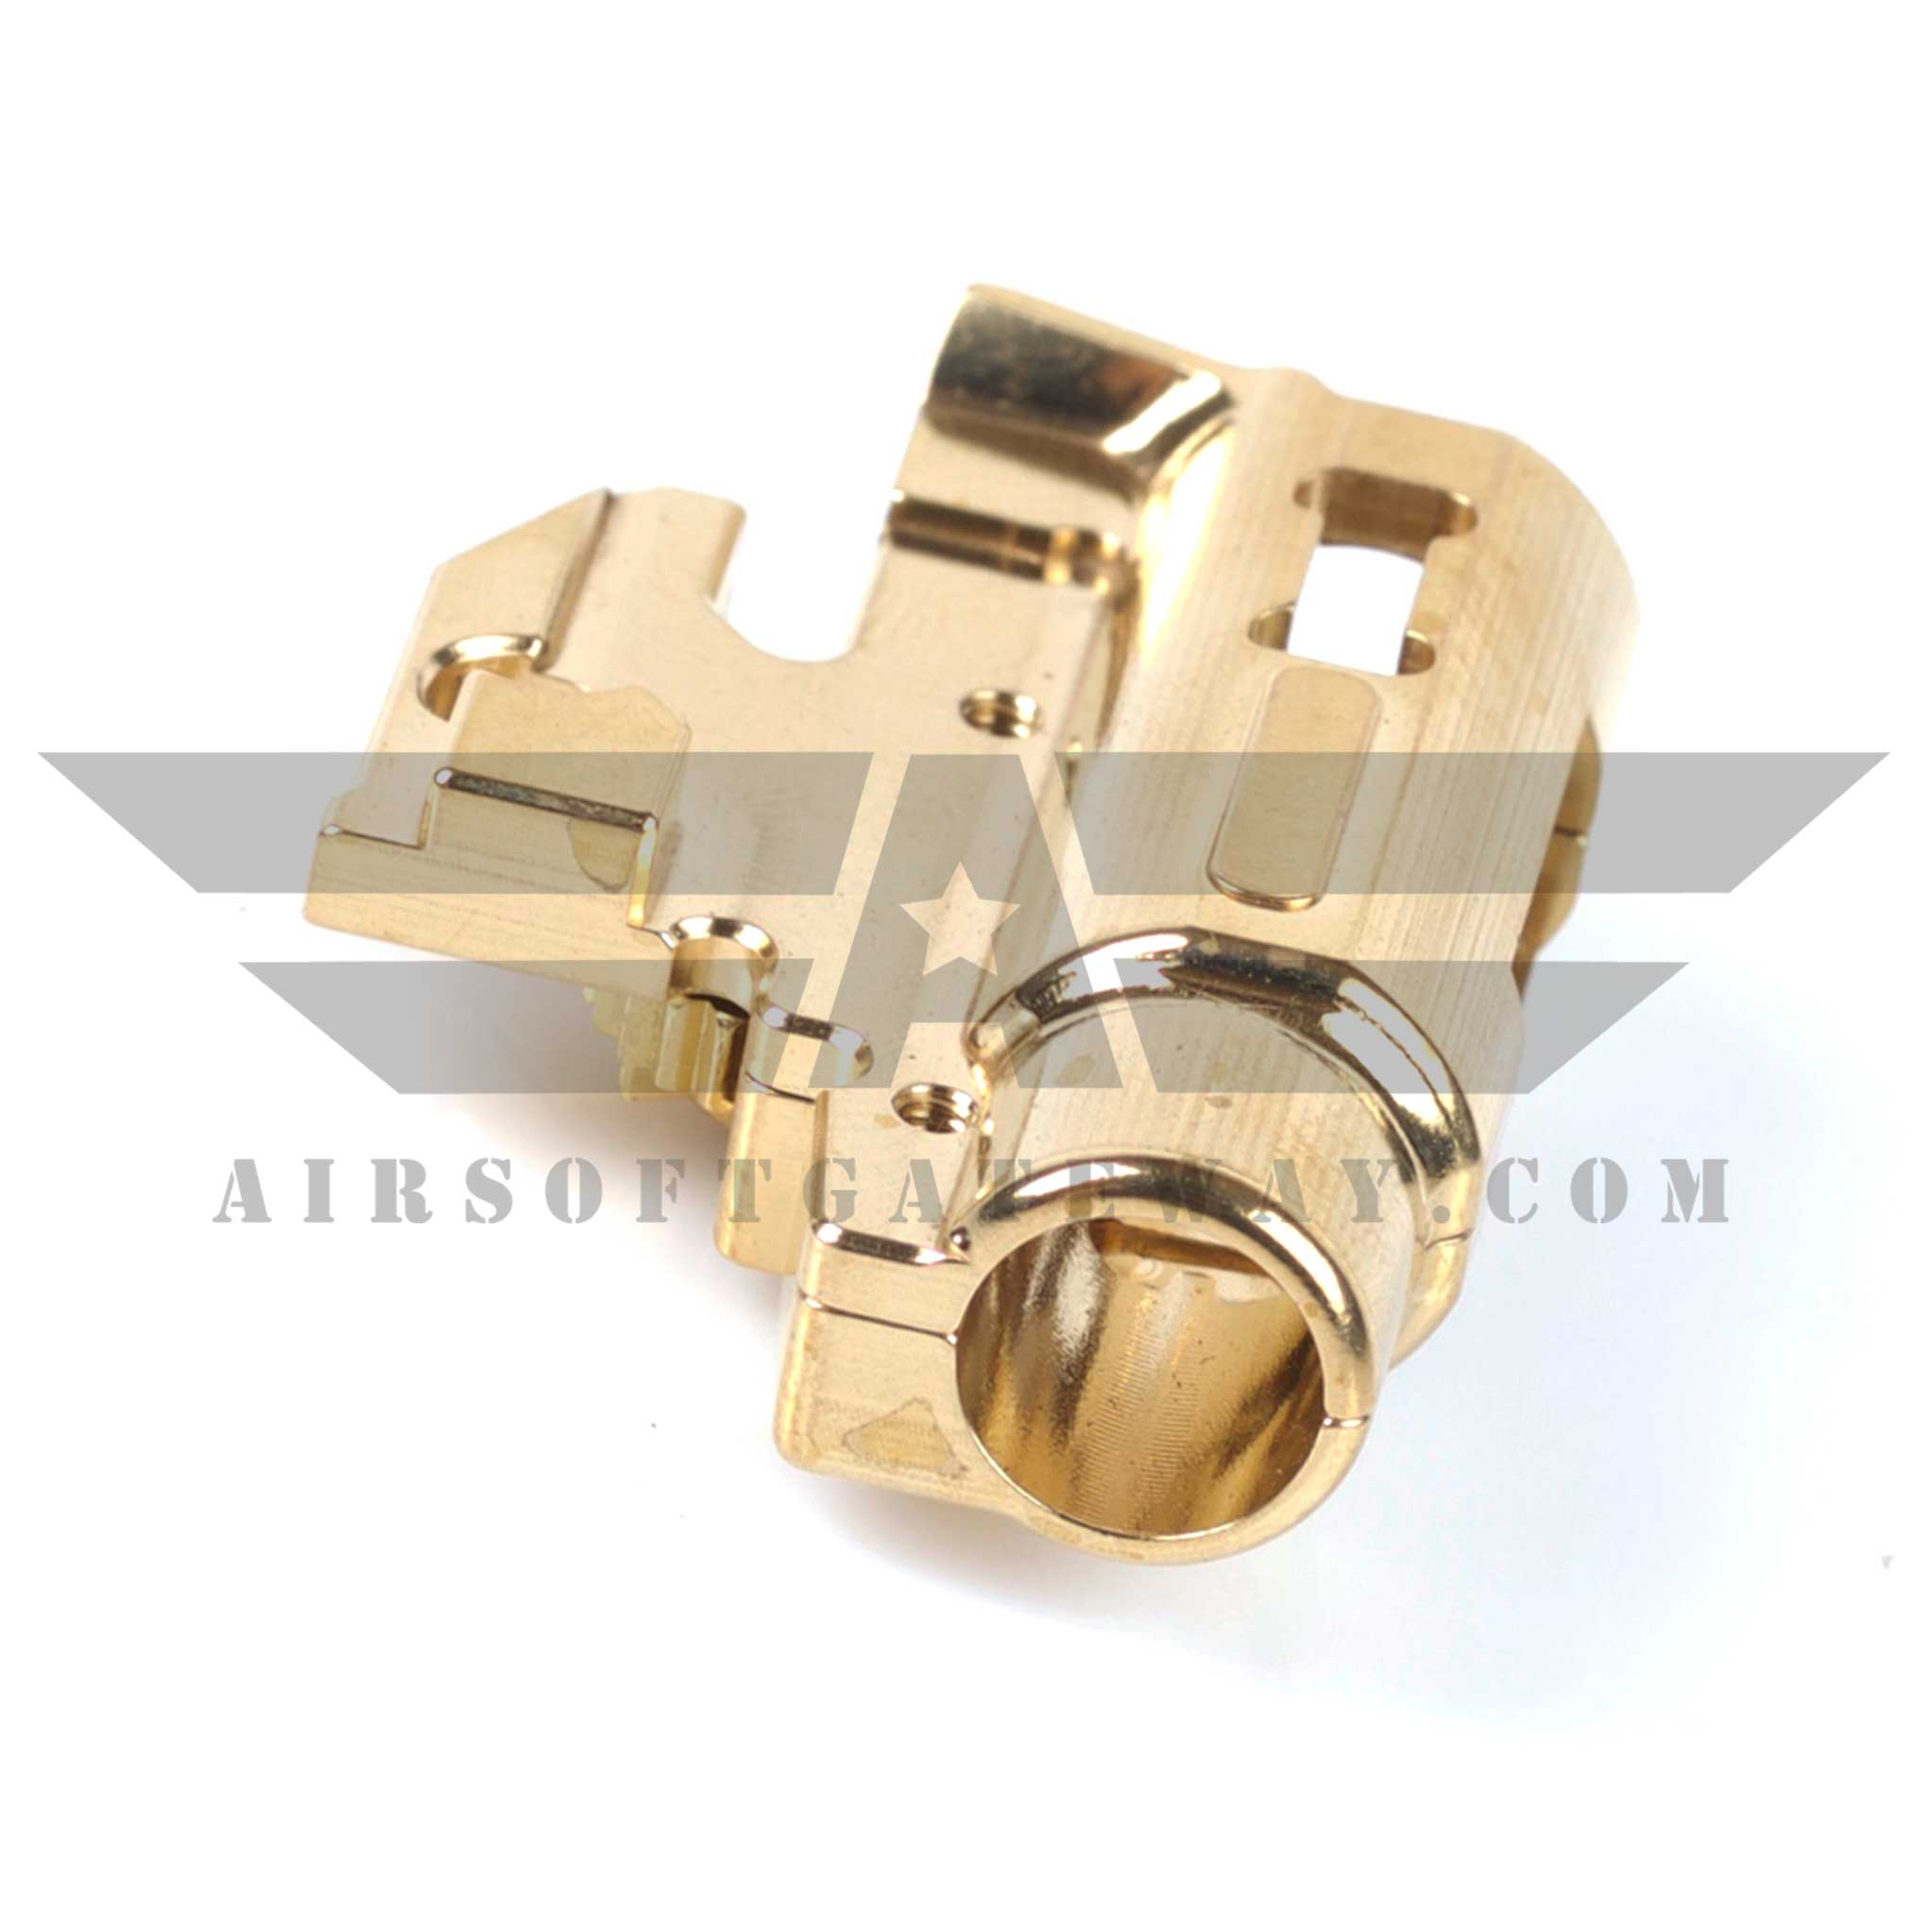 Flash Sale*** Airsoft Masterpiece Brass Hop-up Base for